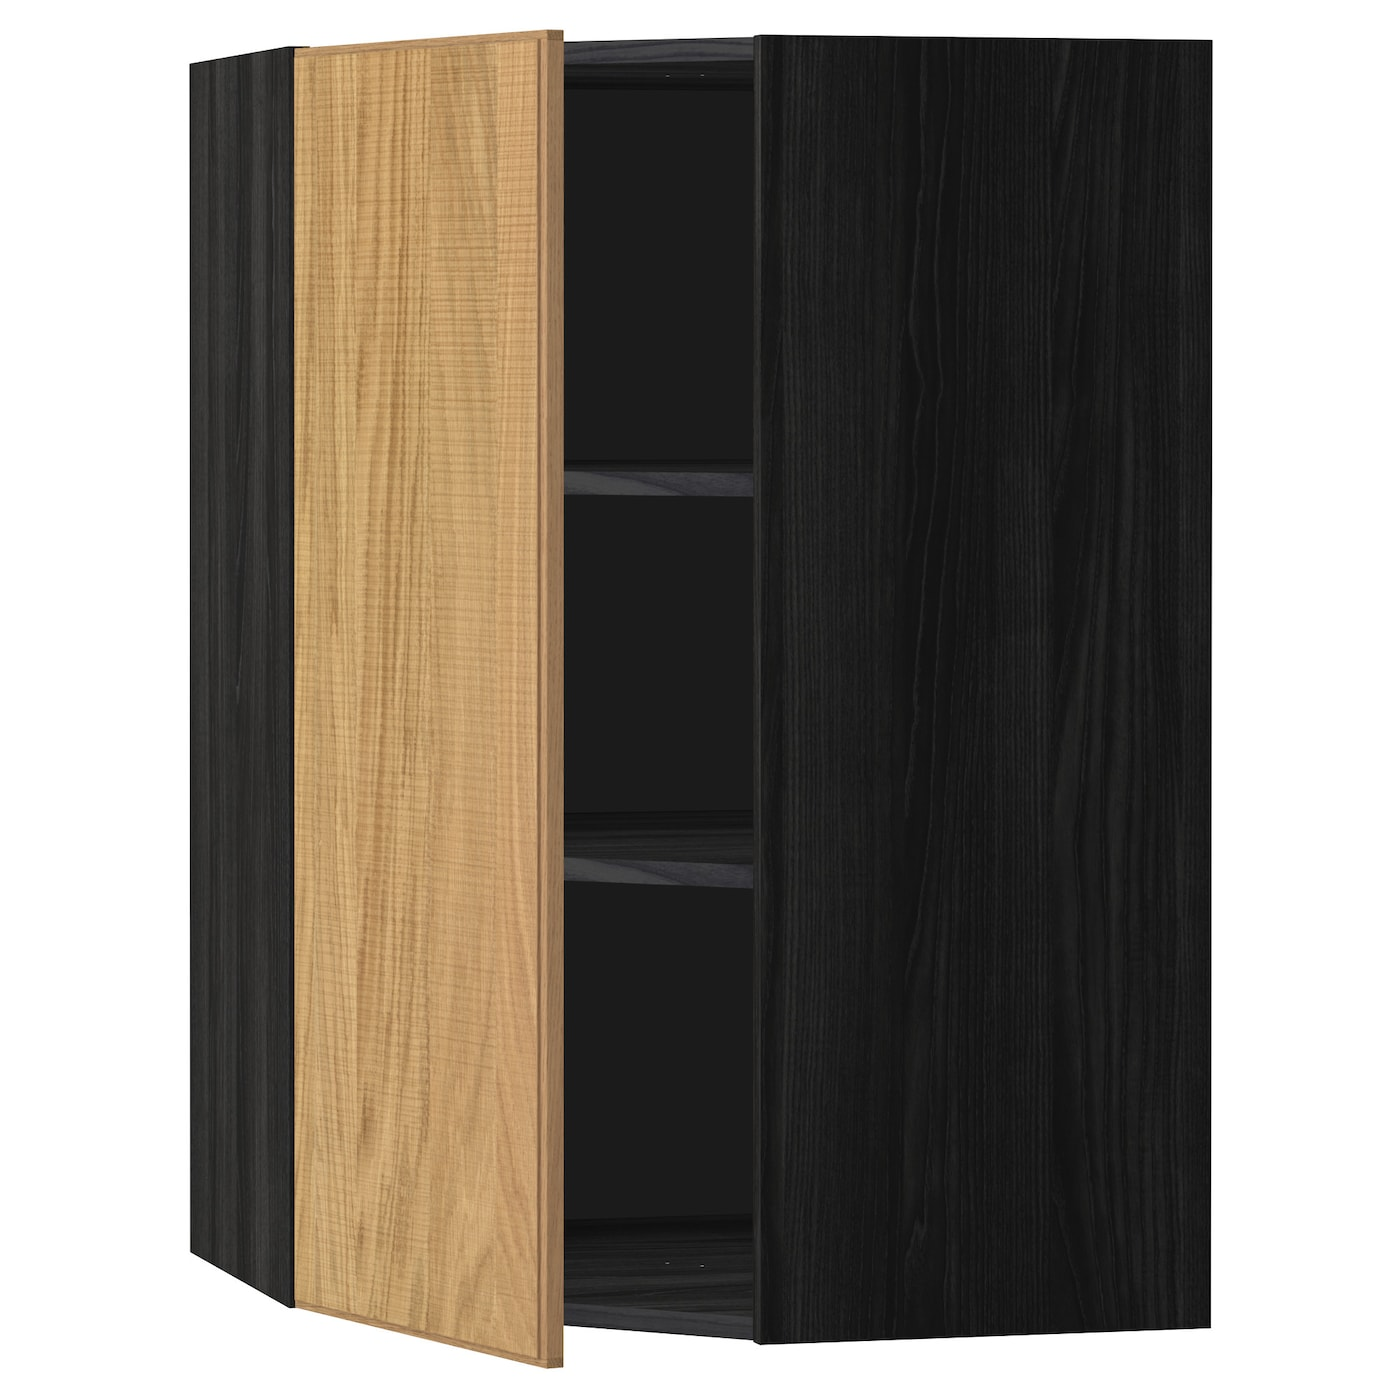 Metod Corner Wall Cabinet With Shelves Black Hyttan Oak